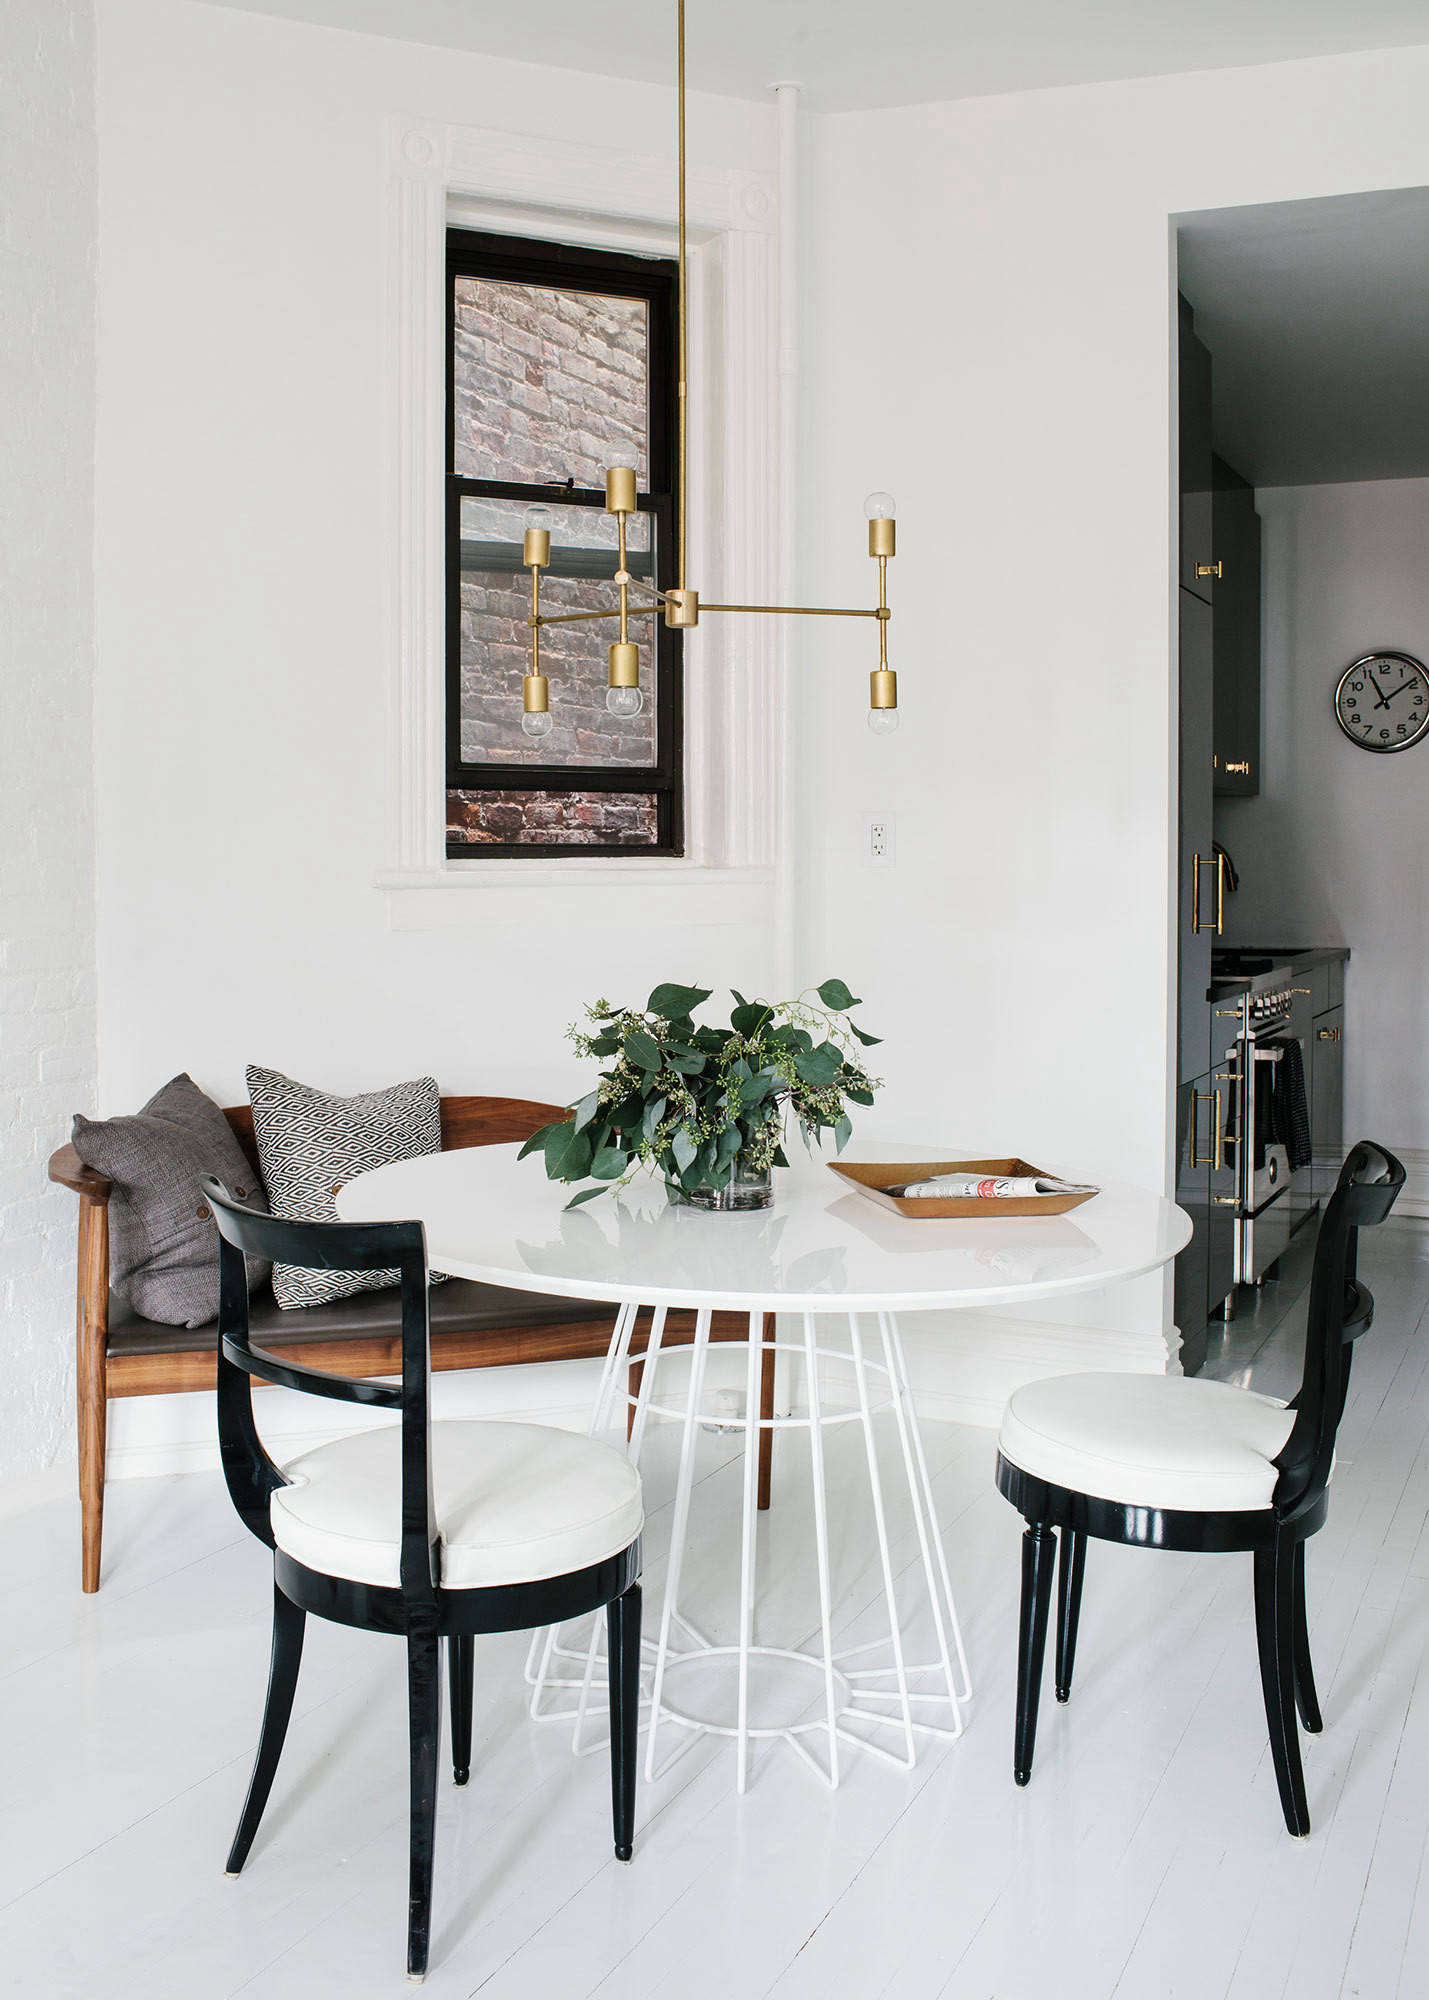 The dining niche, in one corner of the living room, features the Compass Dining Table from CB